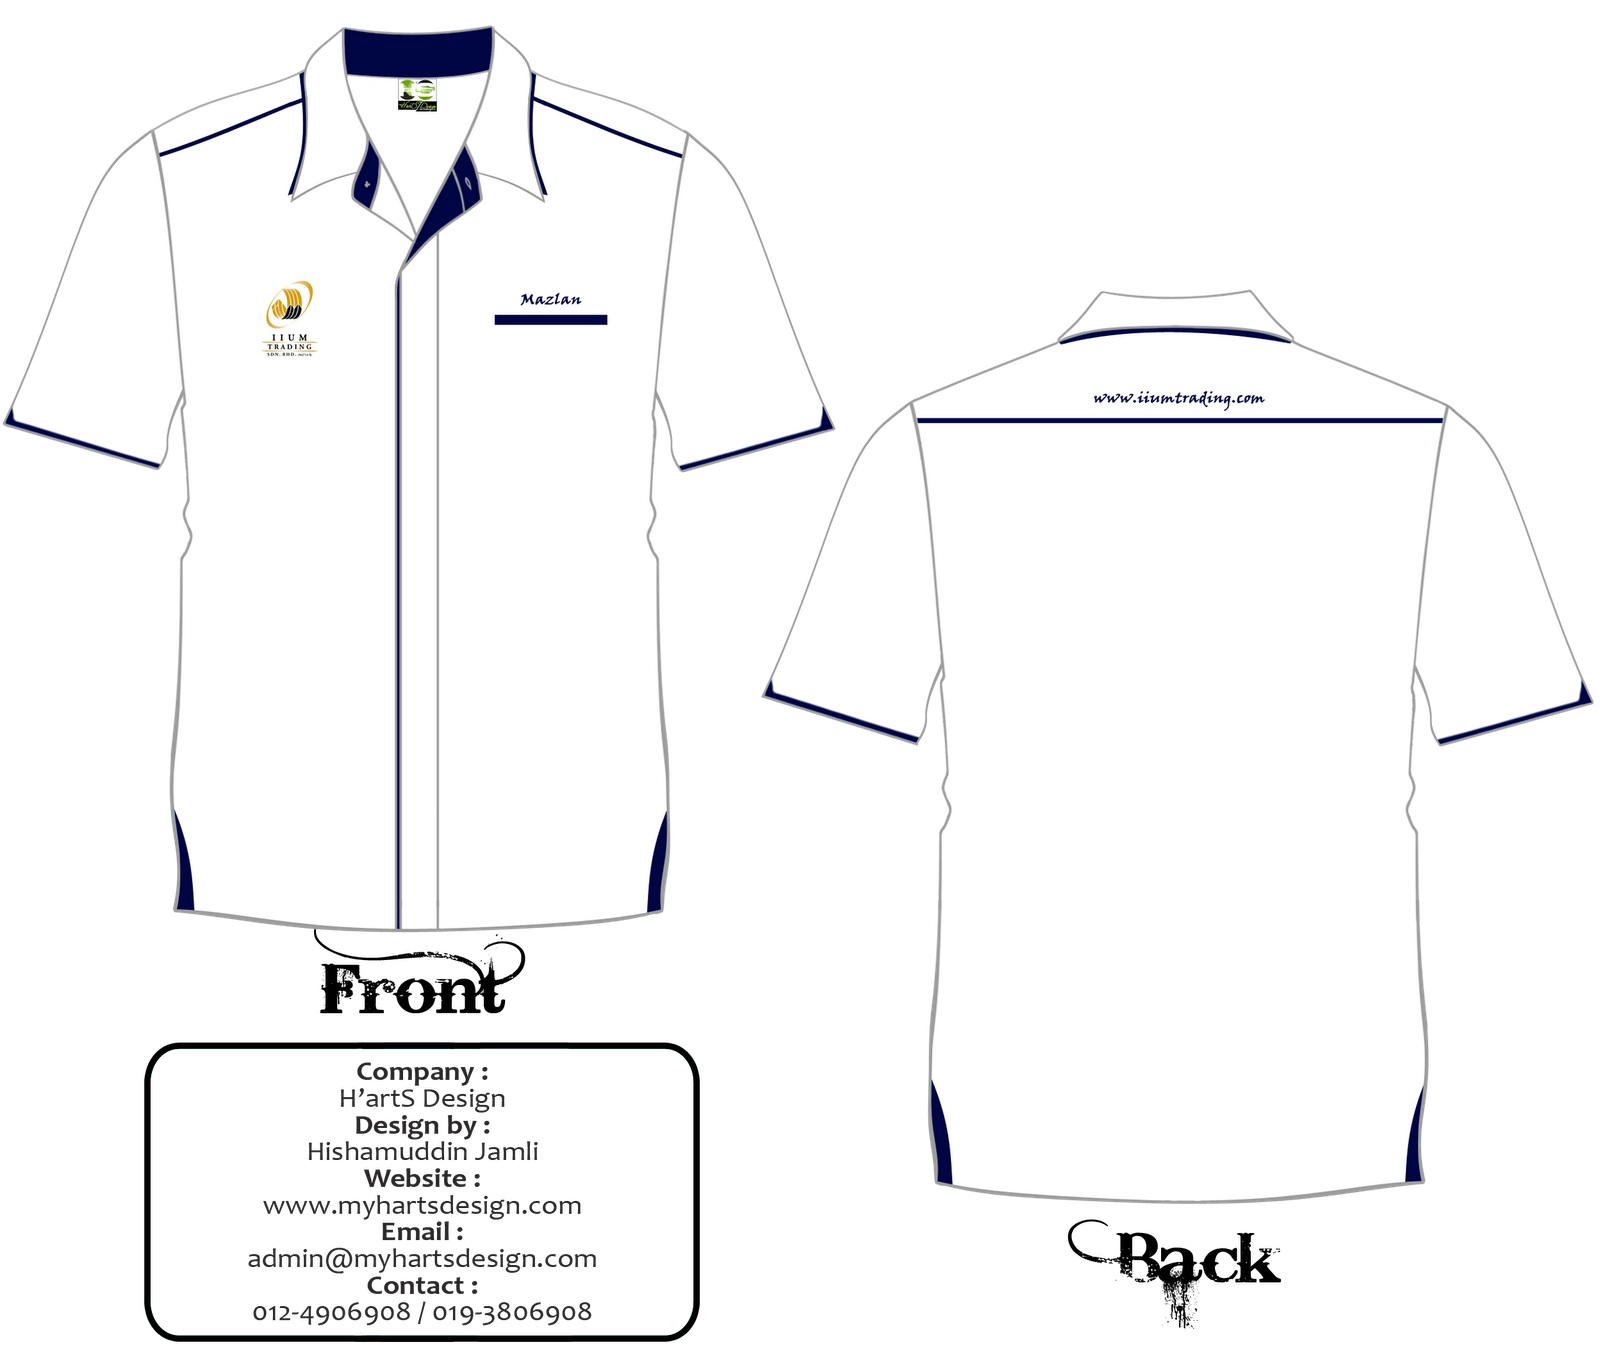 Shirt design malaysia - Our Accepted Design Project Part 7